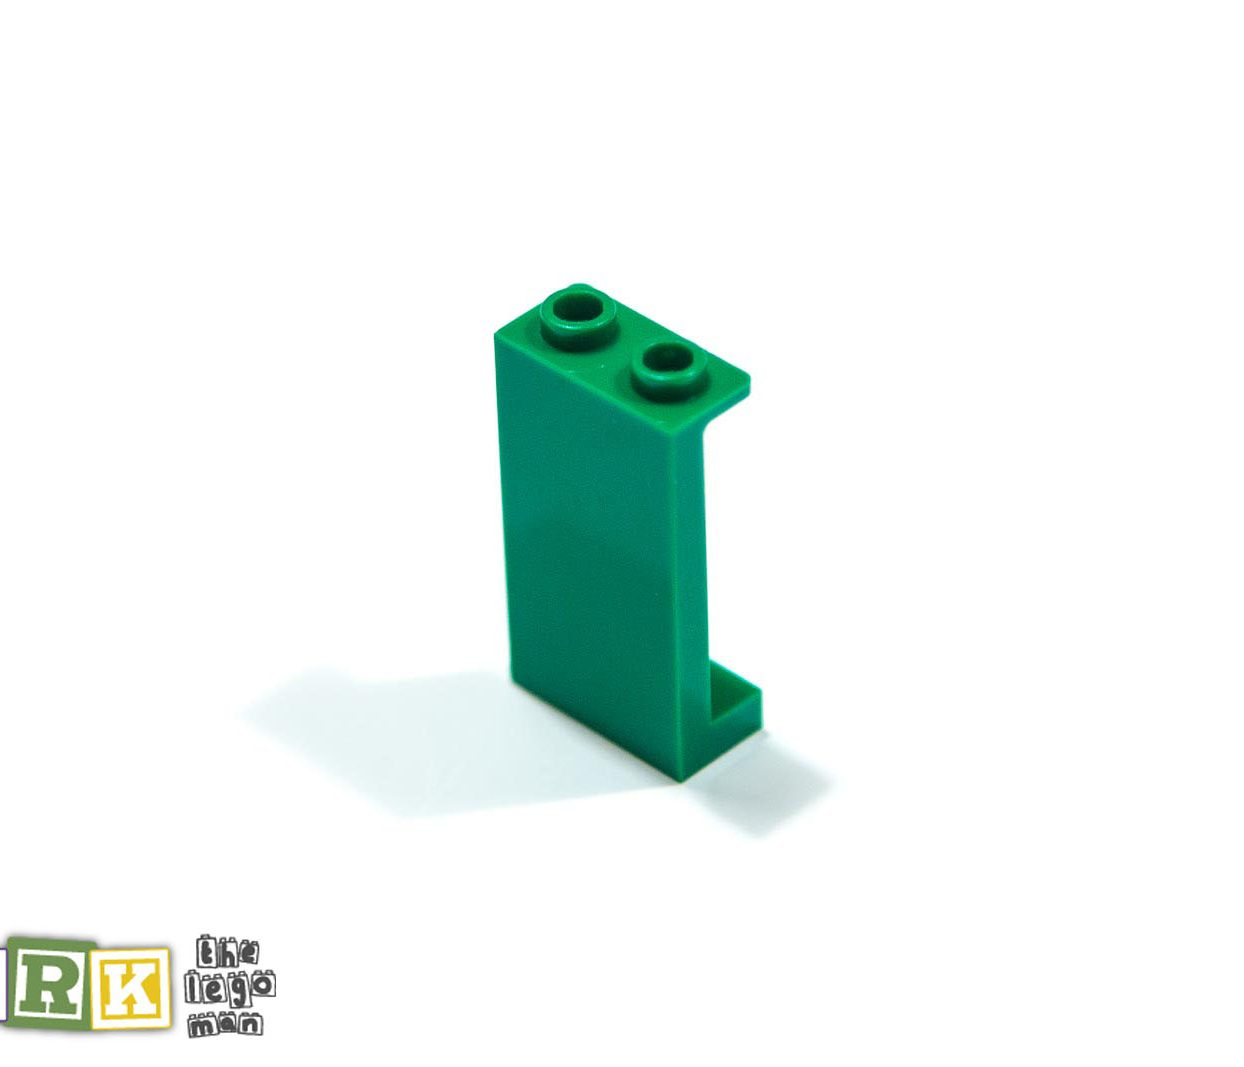 NEW Lego 87544 1x2x3 1x Wall Element 4648315